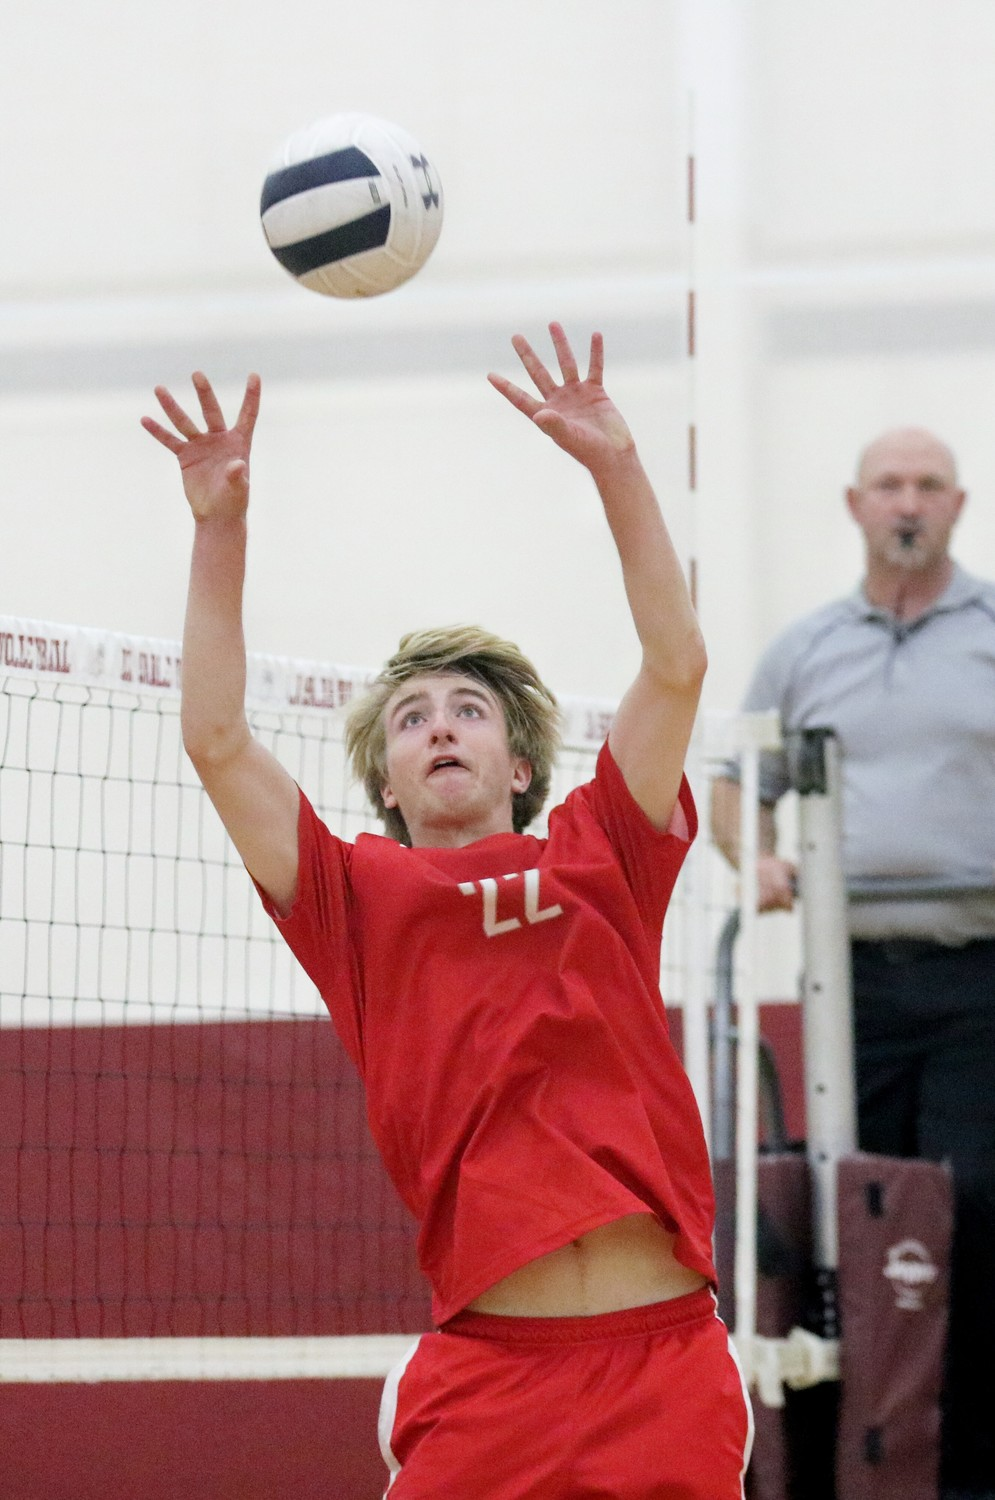 Townie All-Stater Dan Forsythe setting vs LaSalle in an EP volleyball win.  Photo by Paul Tumidajski.